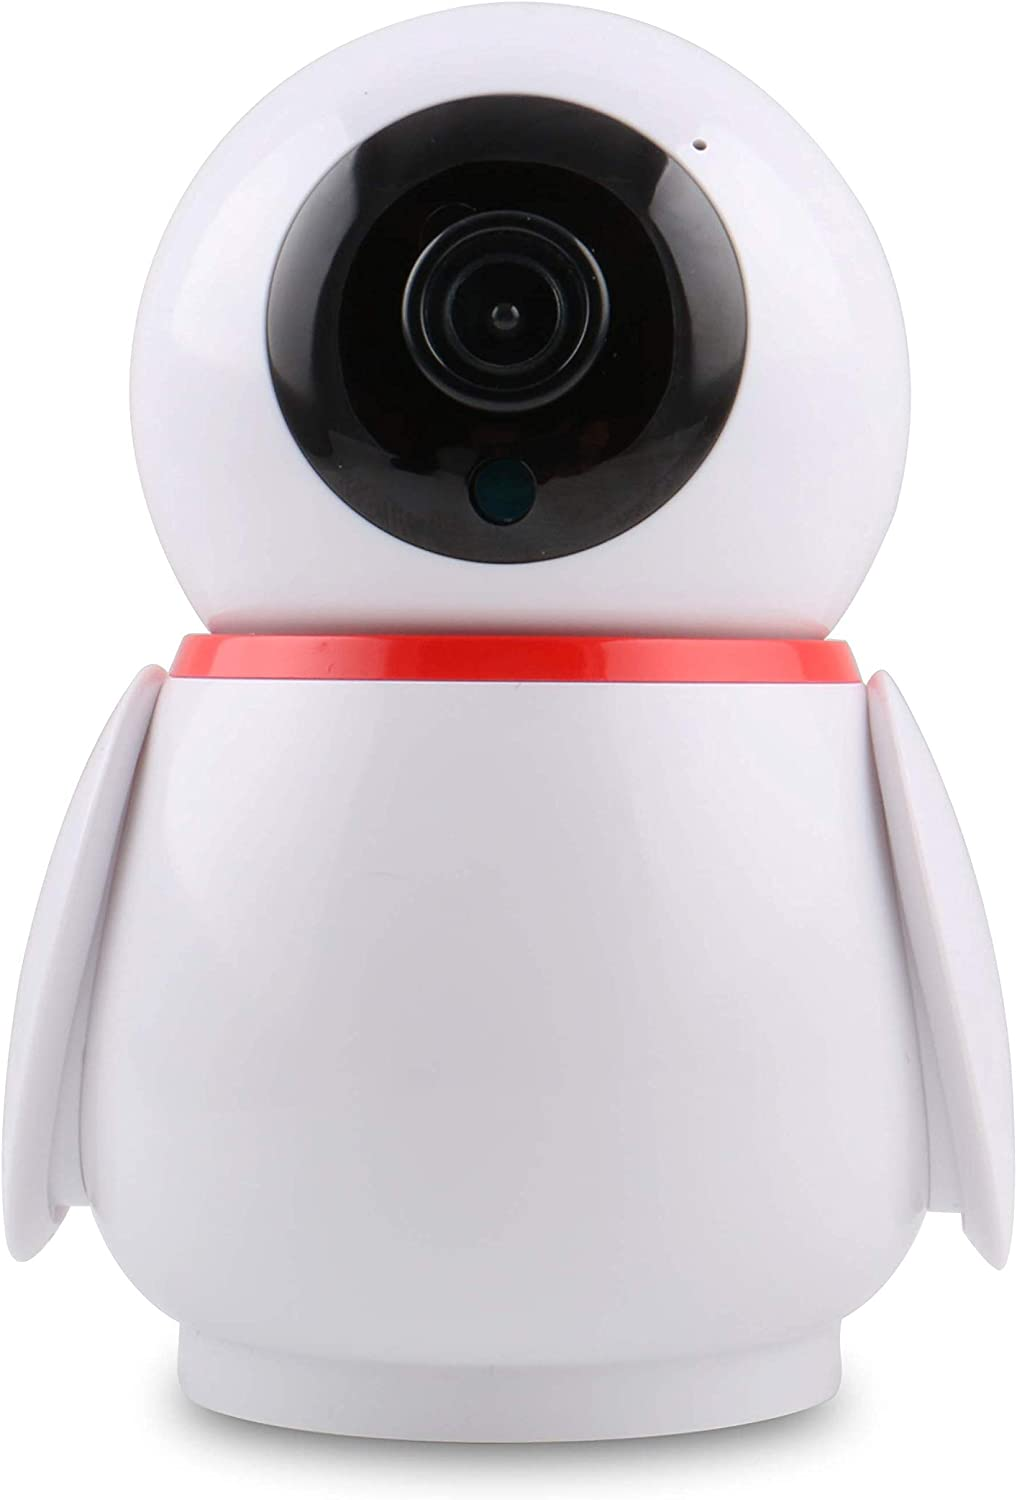 Anspo 1080P HD WiFi Camera Indoor, Pan/Tilt Home Camera Wireless Security Dog Camera IP Camera for Baby/Pet/Nanny Monitor with Night Vision